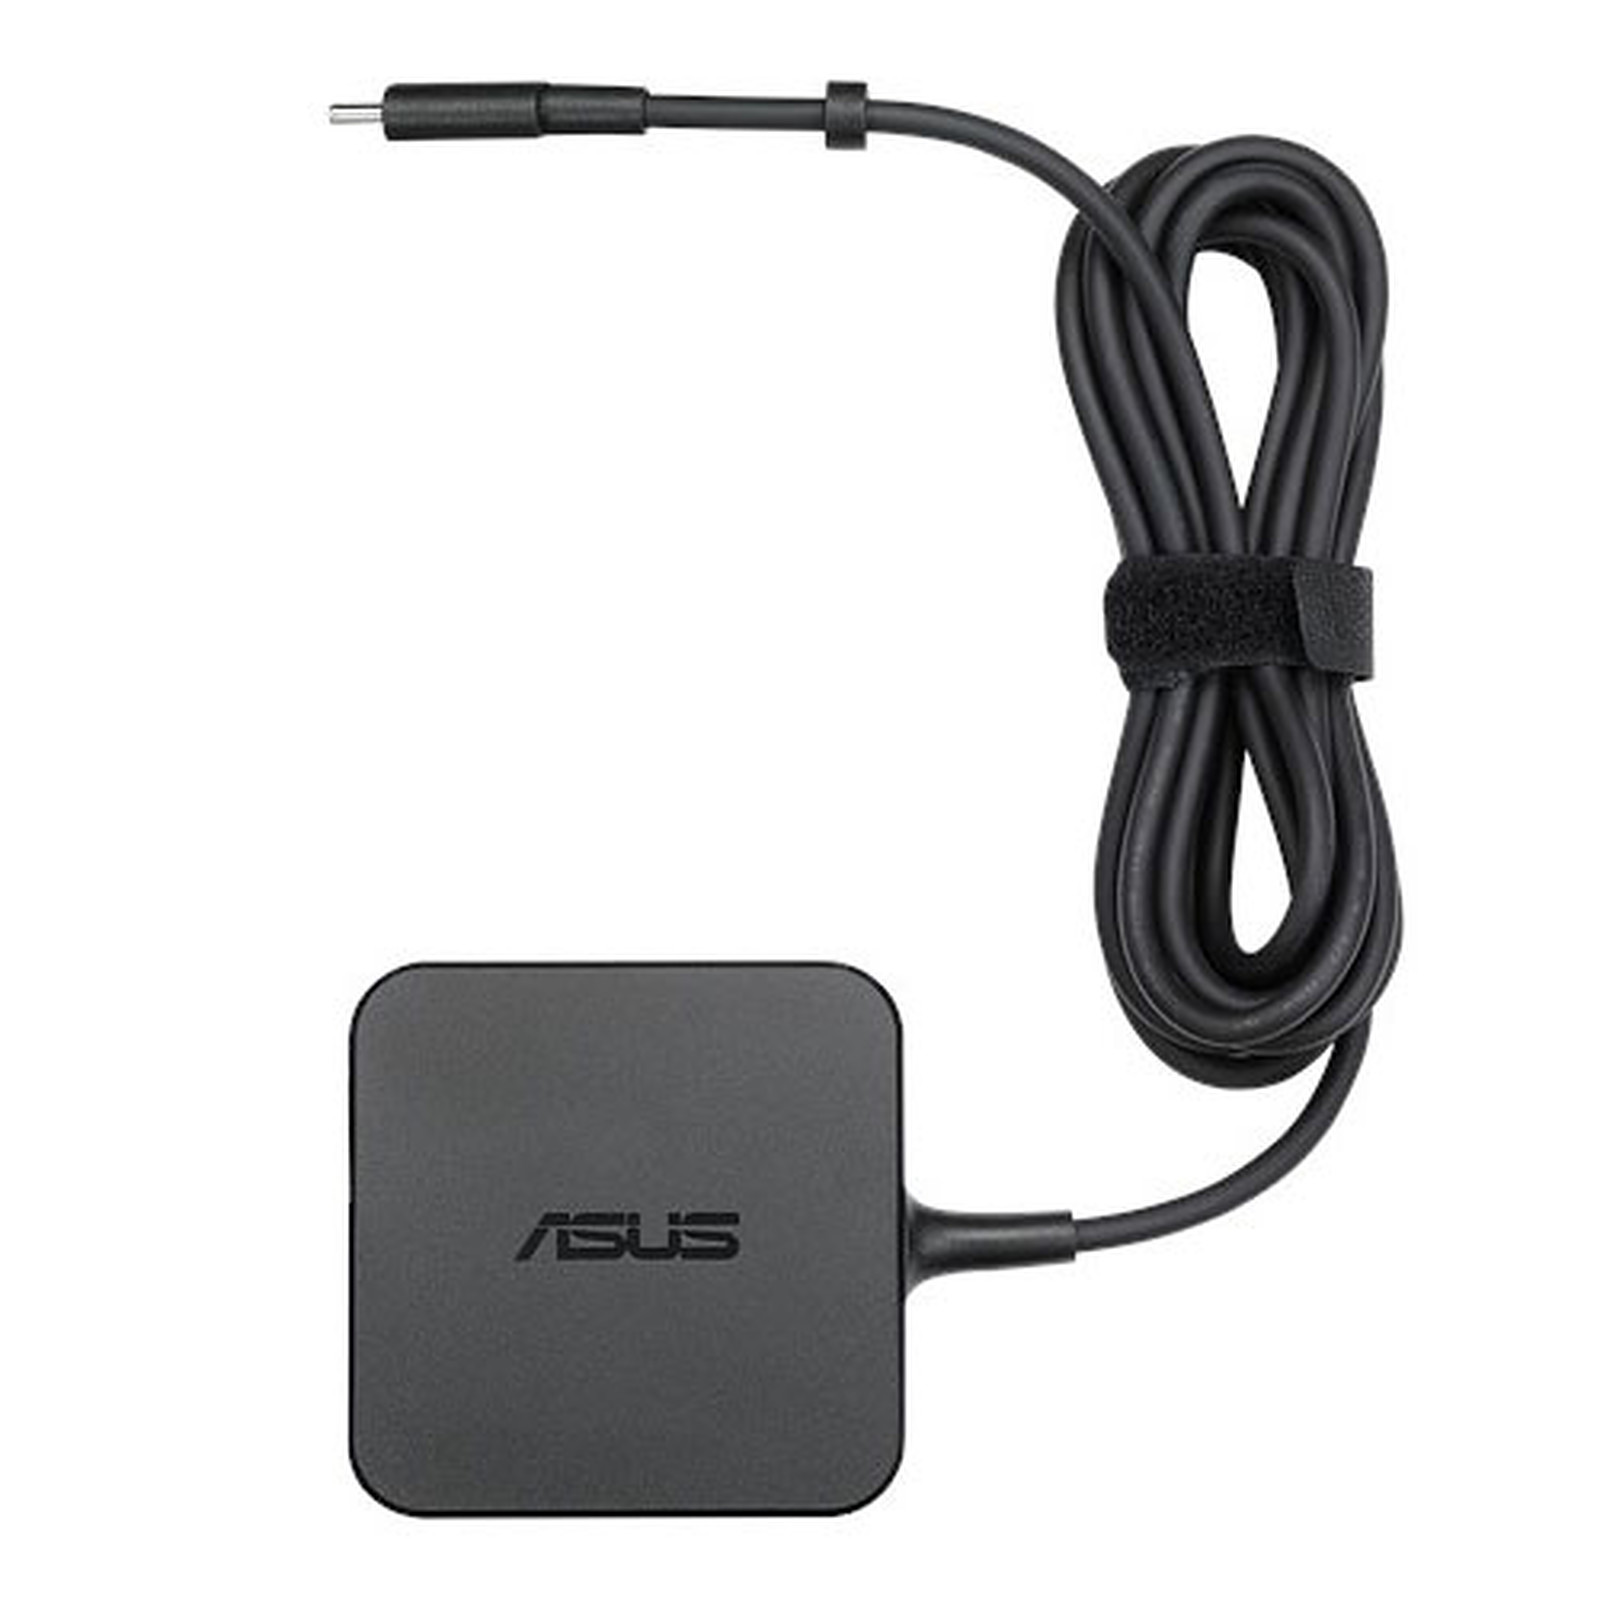 chargeur asus 19v ldlc